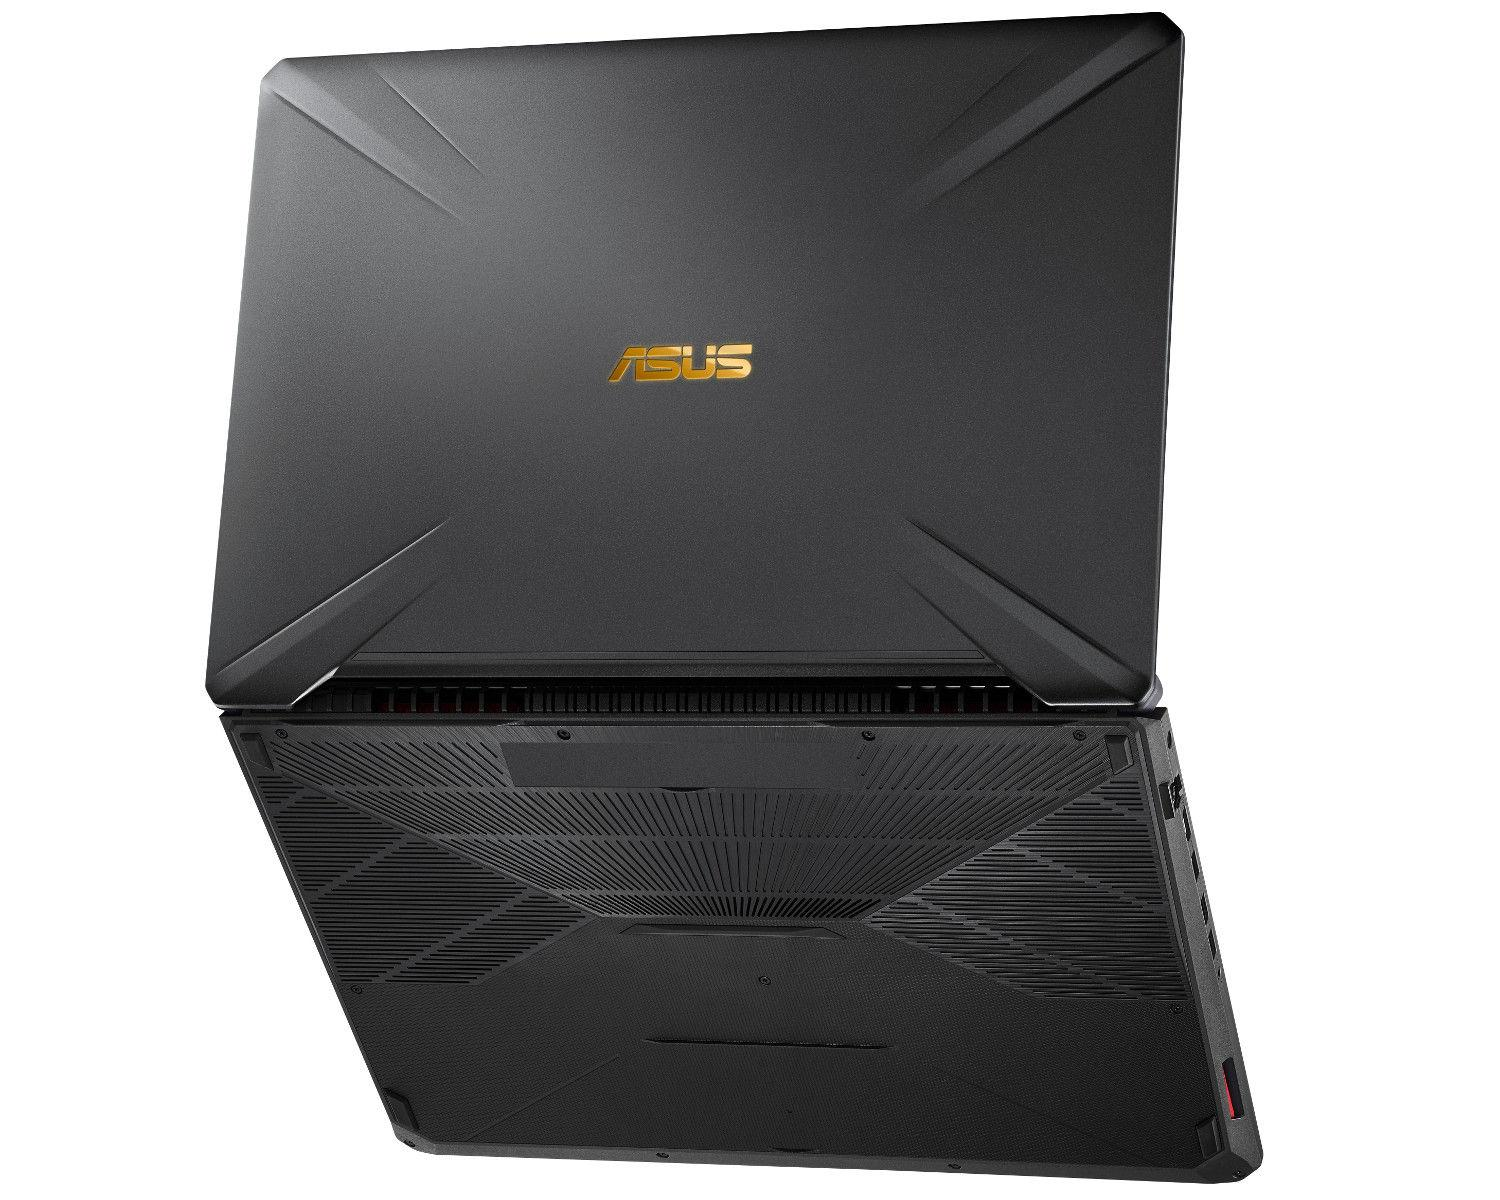 Ordinateur portable Asus TUF 765GM-EV149T Noir/Gold - GTX 1060 144 Hz - photo 5